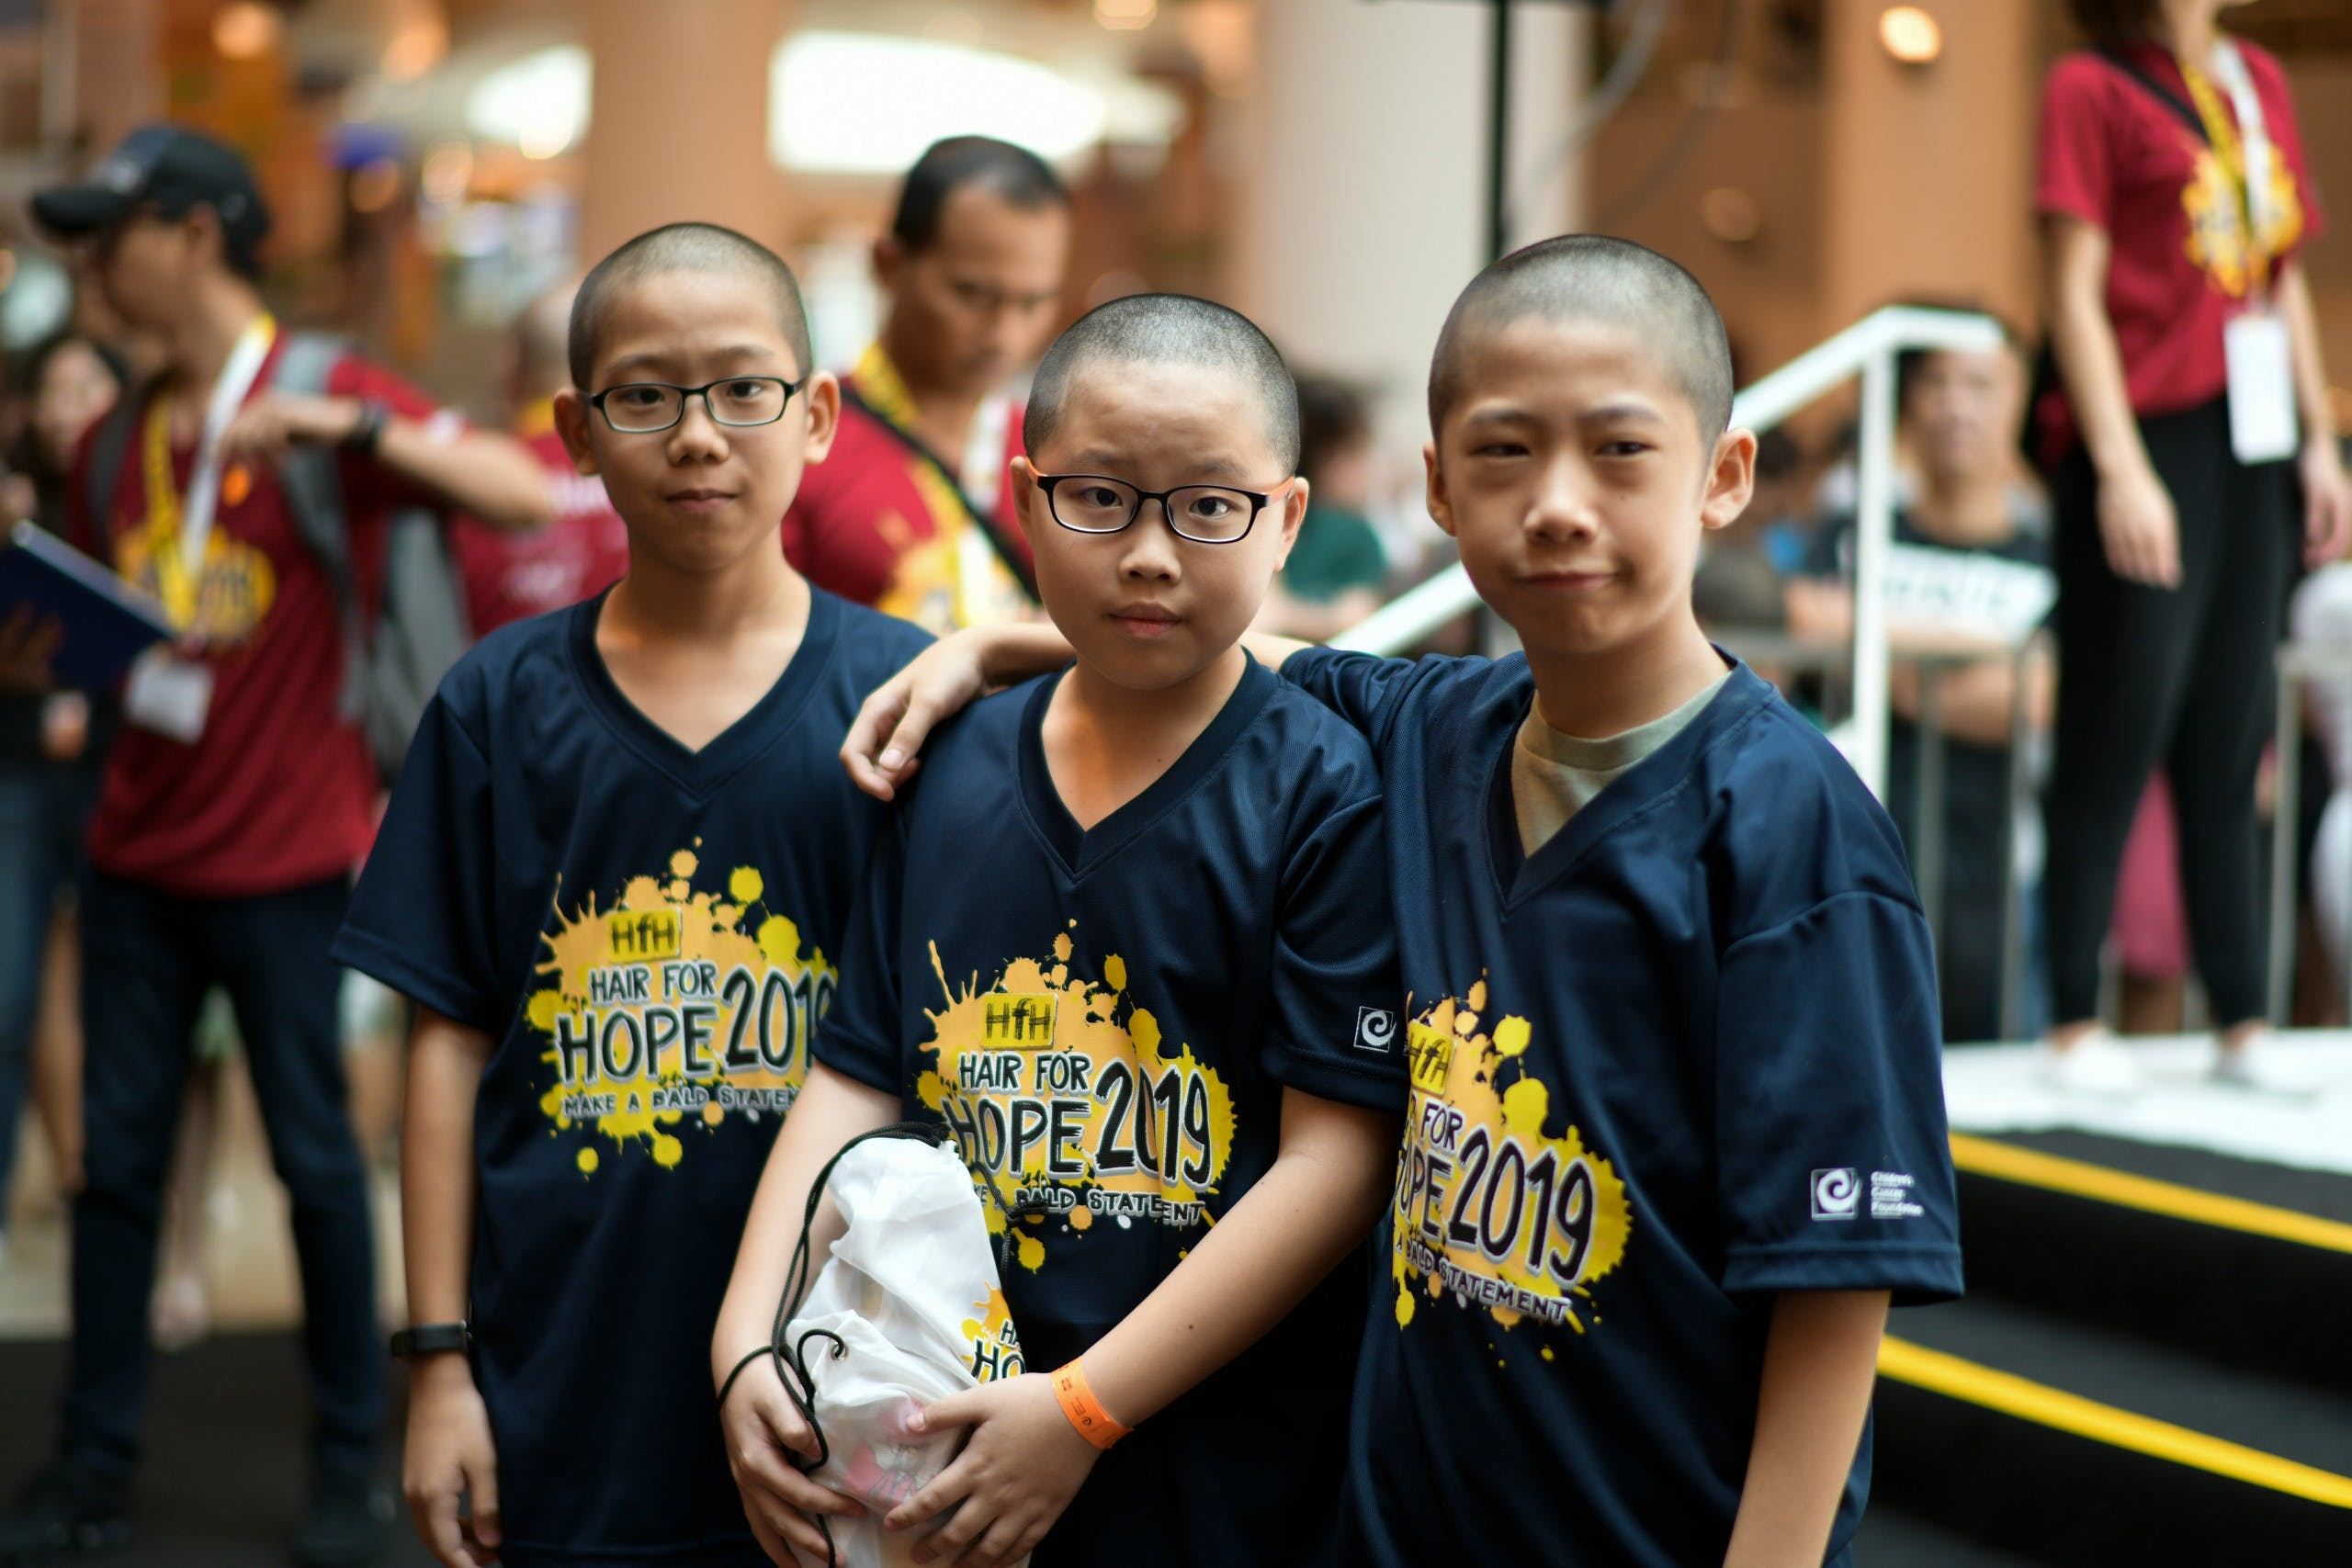 Children with shaved heads for CCF